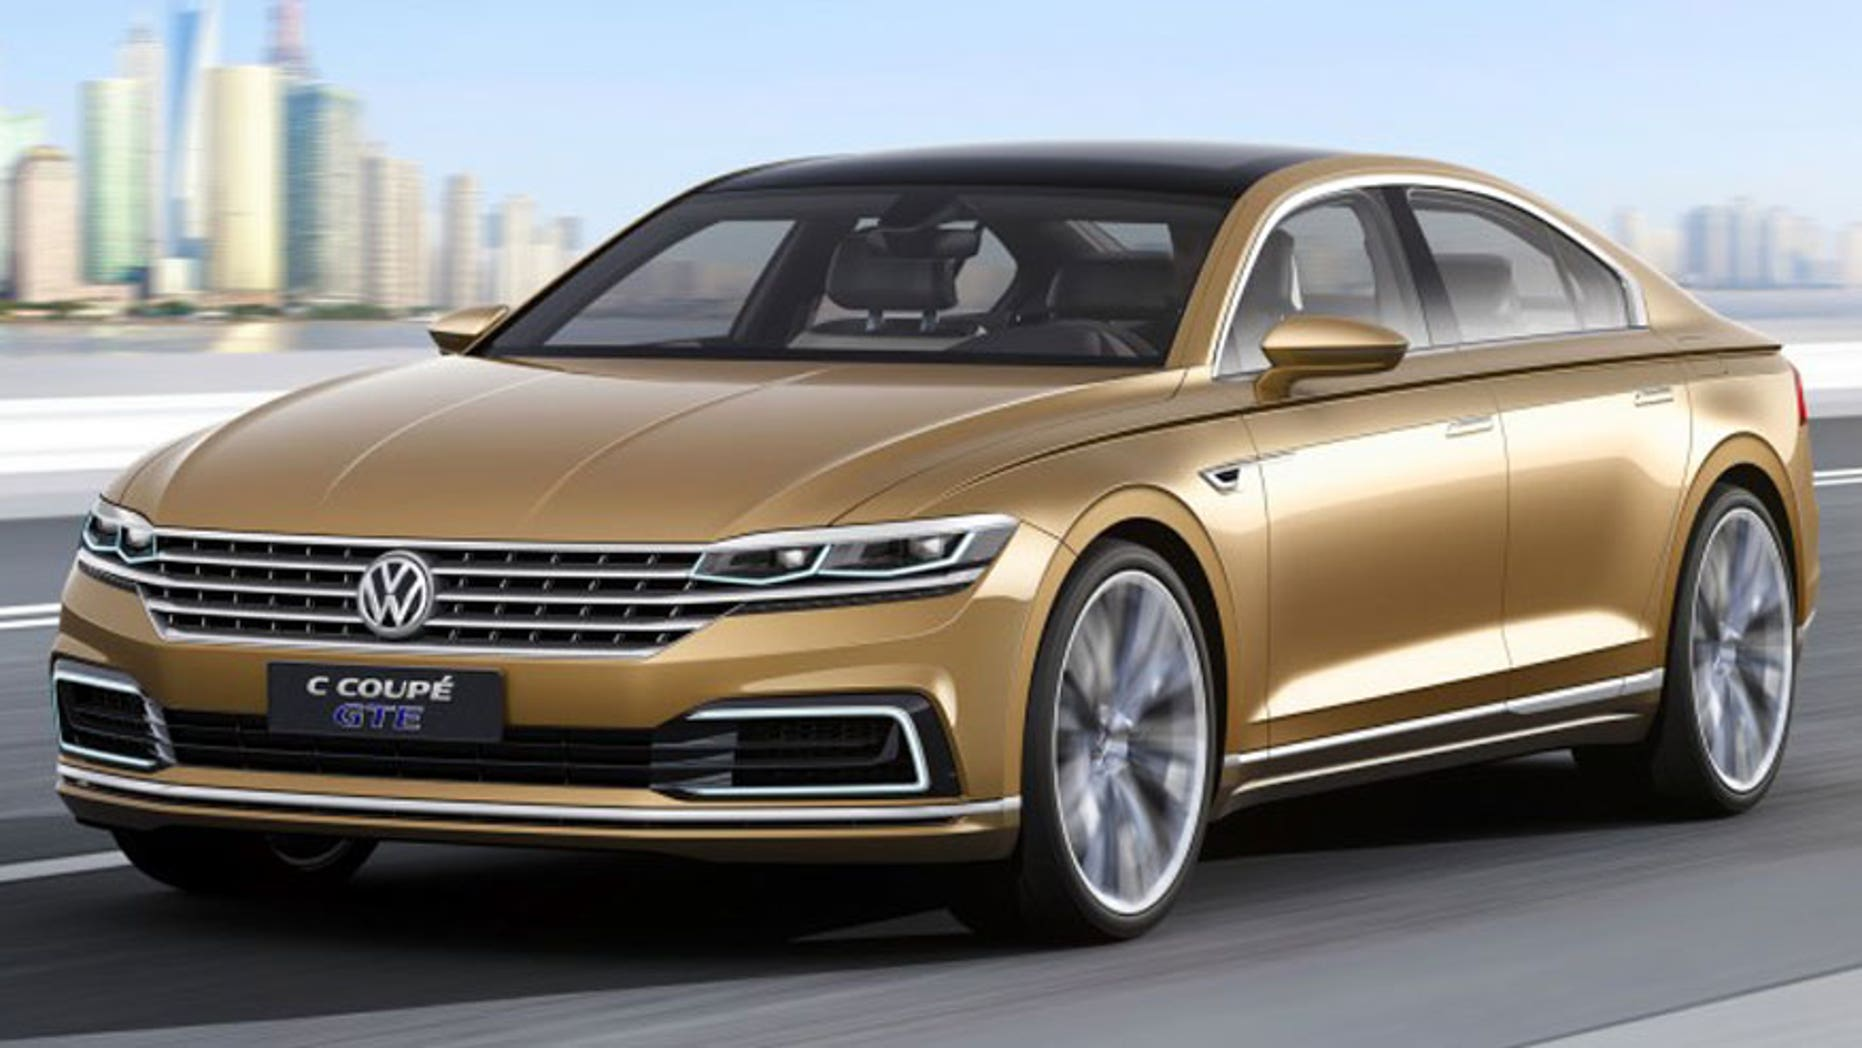 C Coupe GTE plug-in hybrid concept